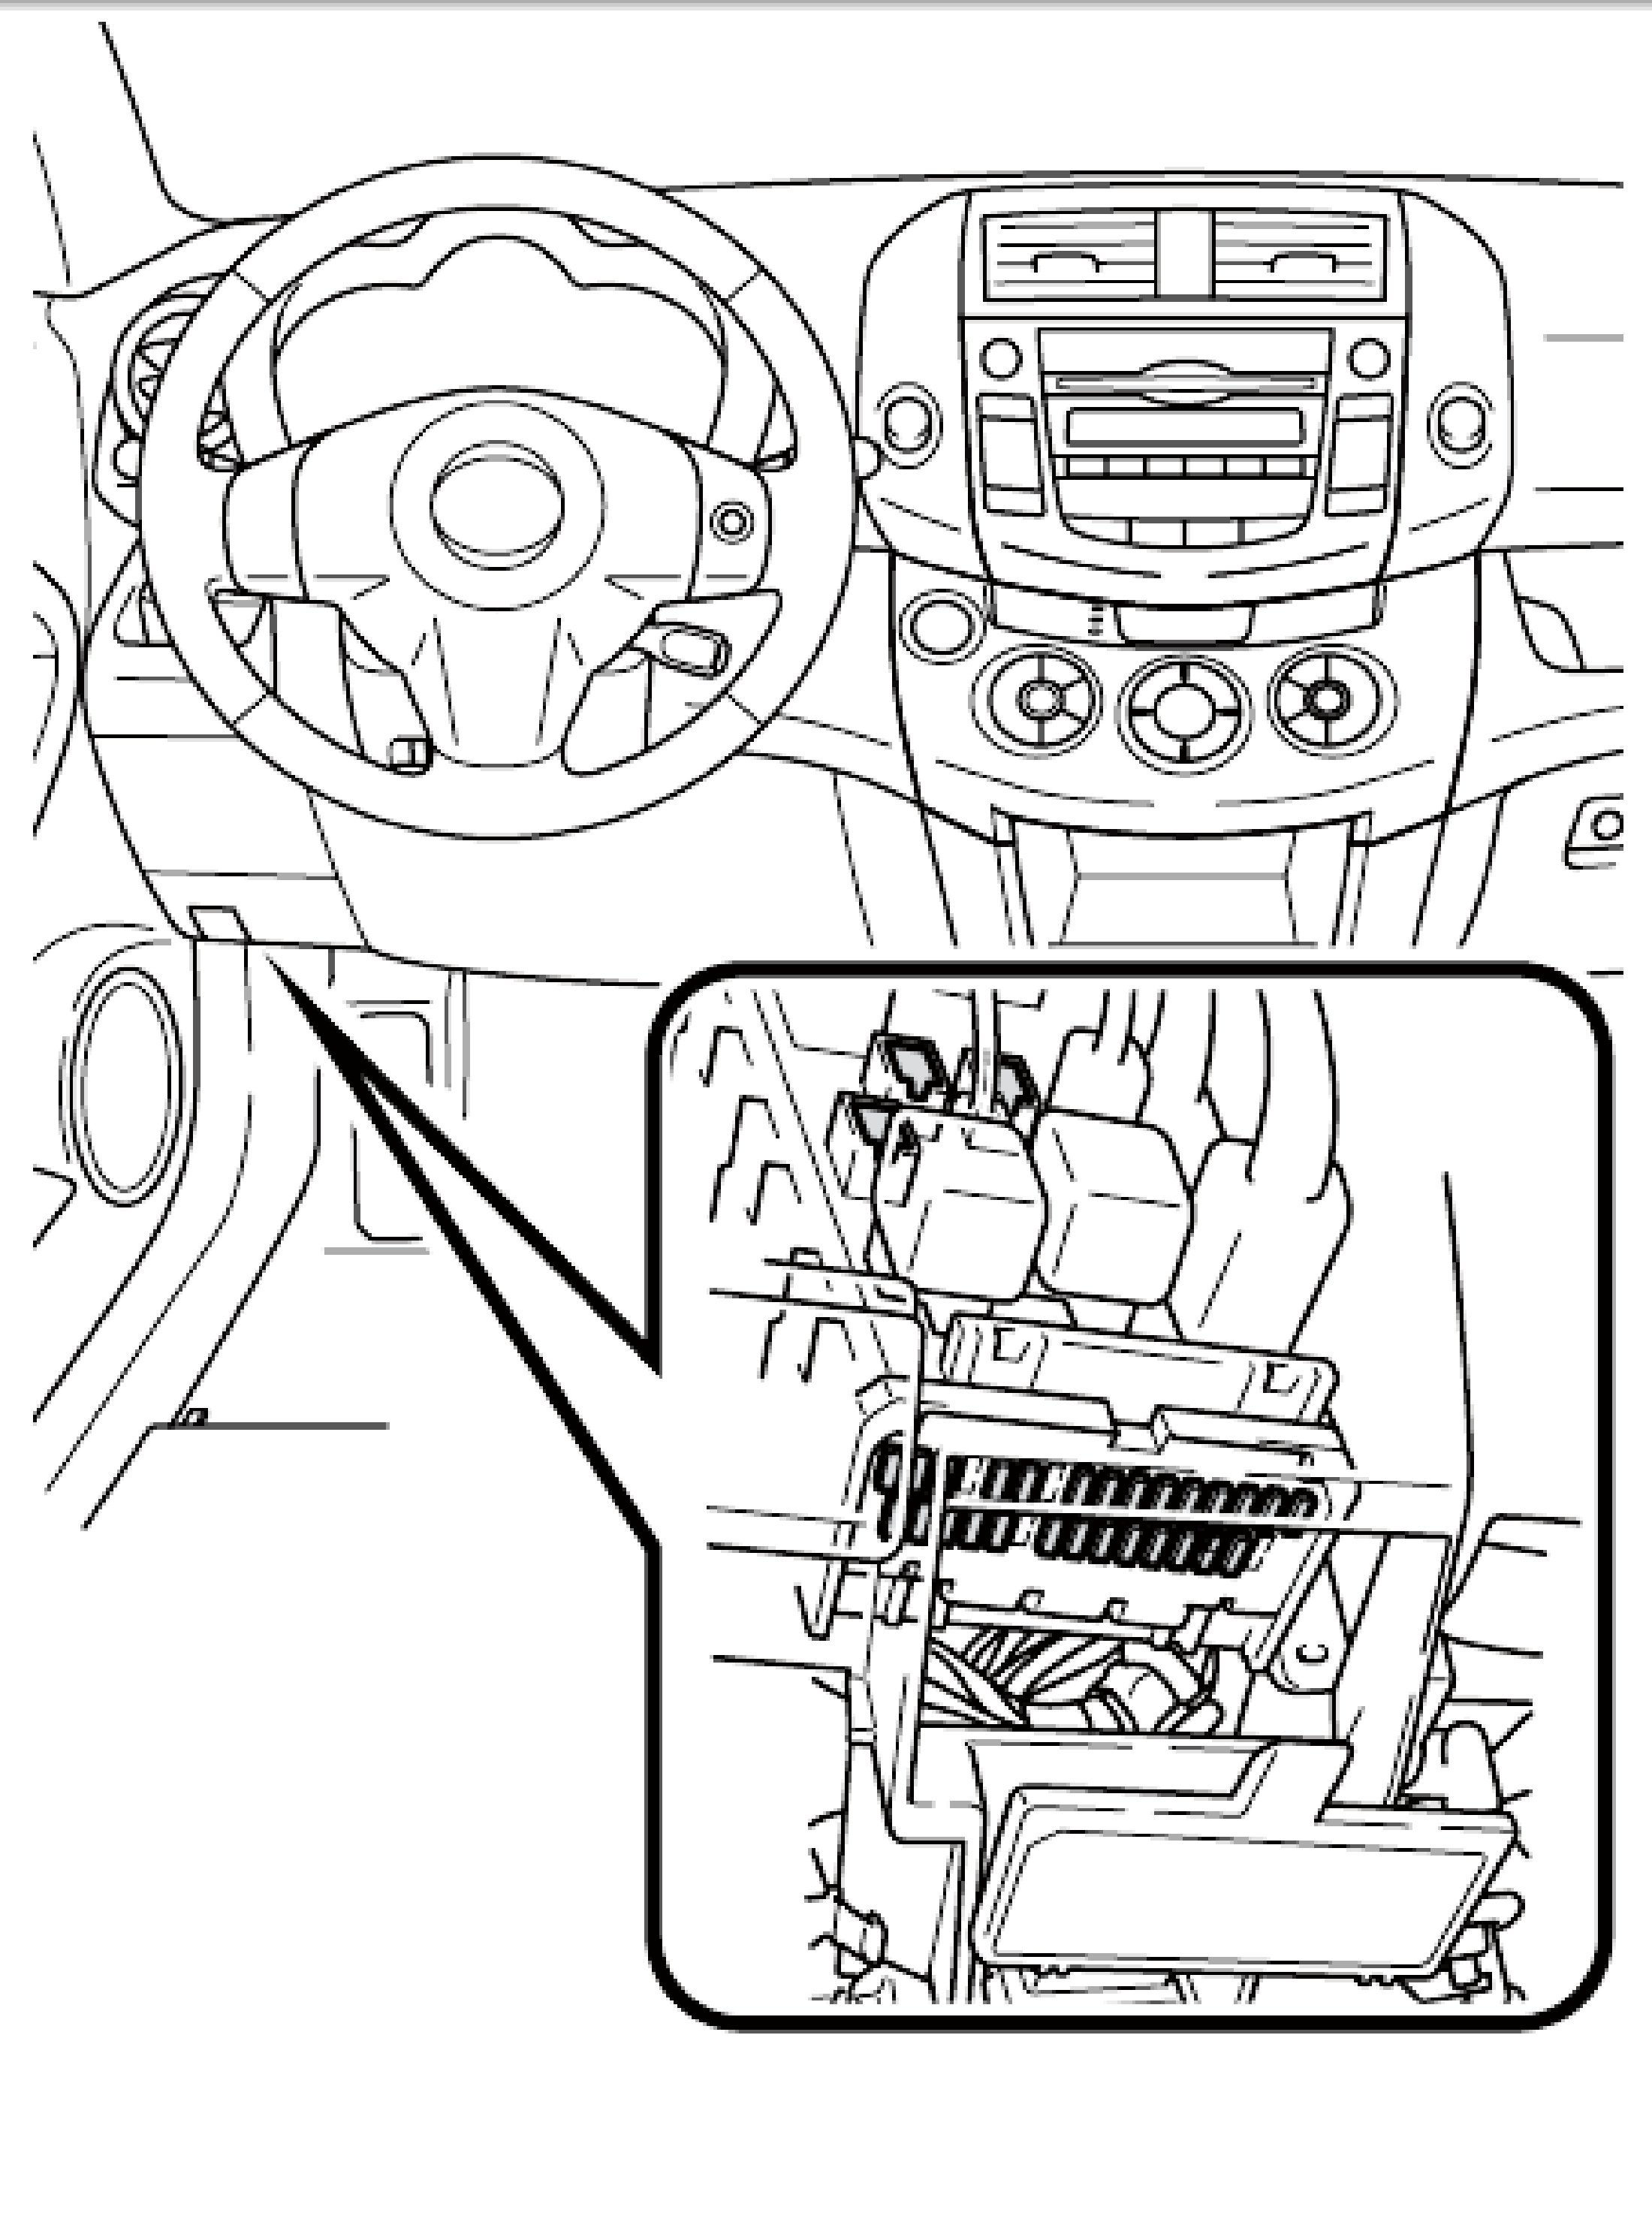 2000 isuzu npr fuse diagram